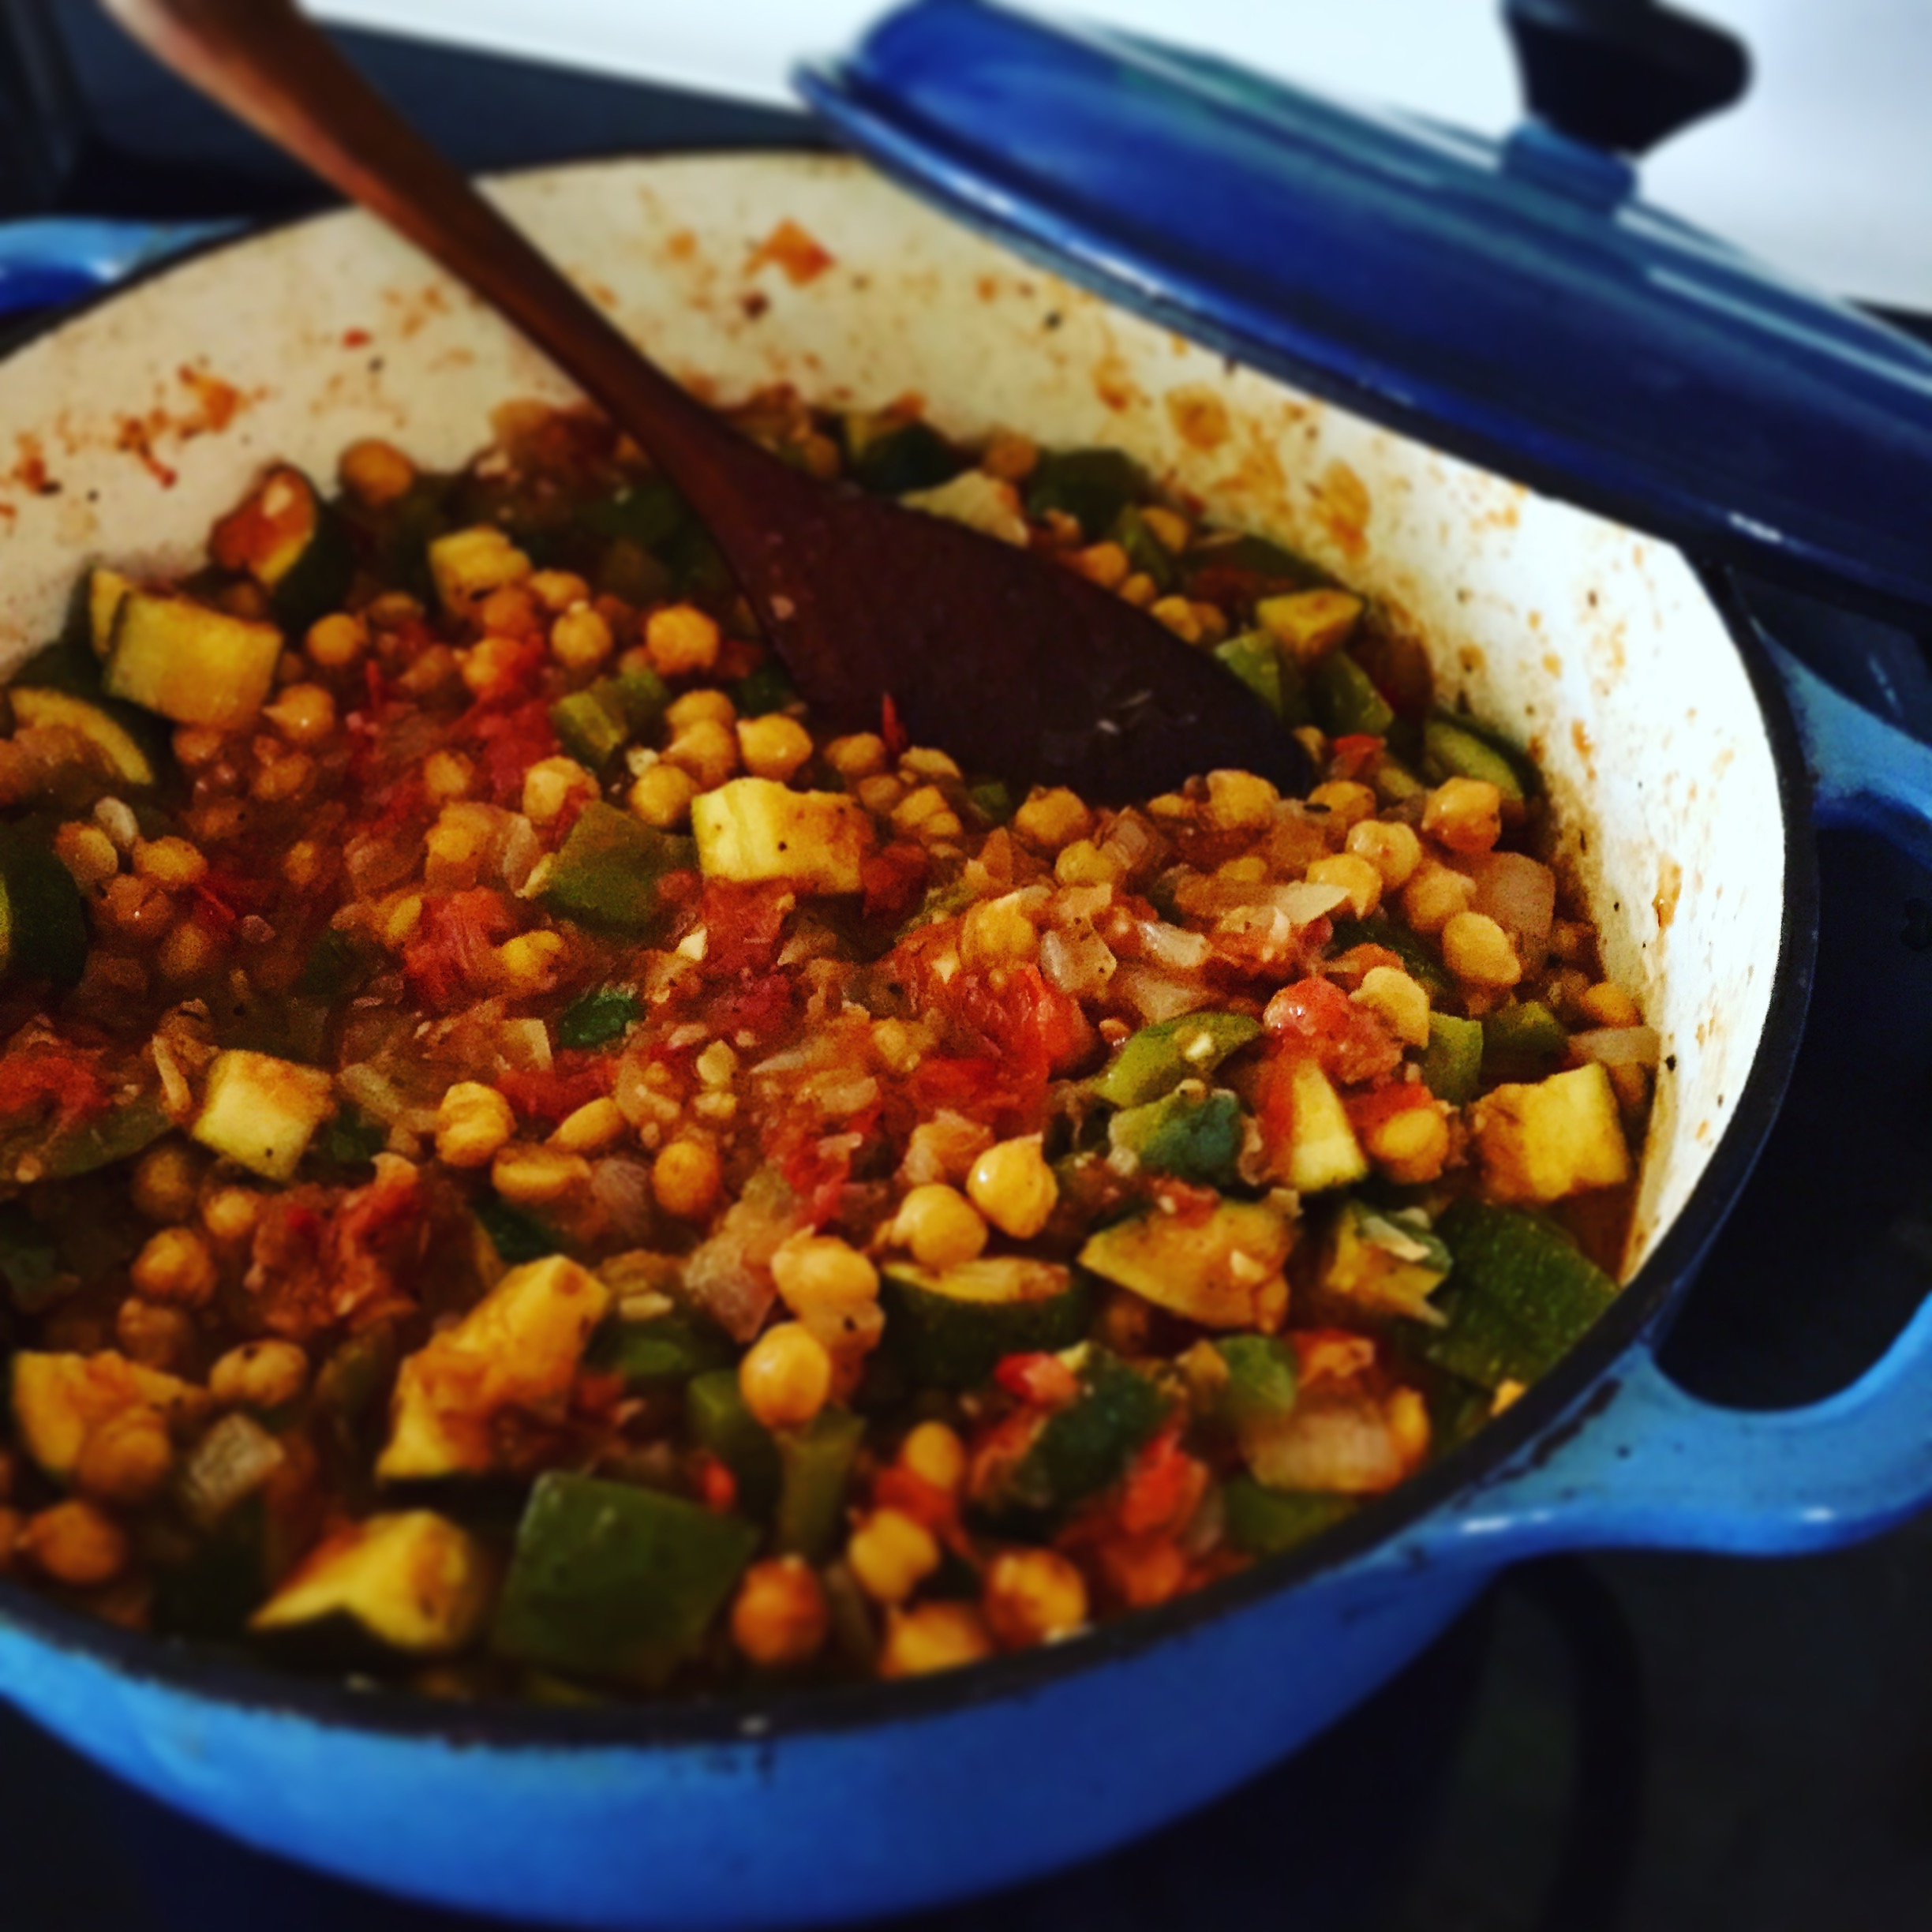 Summer Vegetables and Garbanzo for Barb